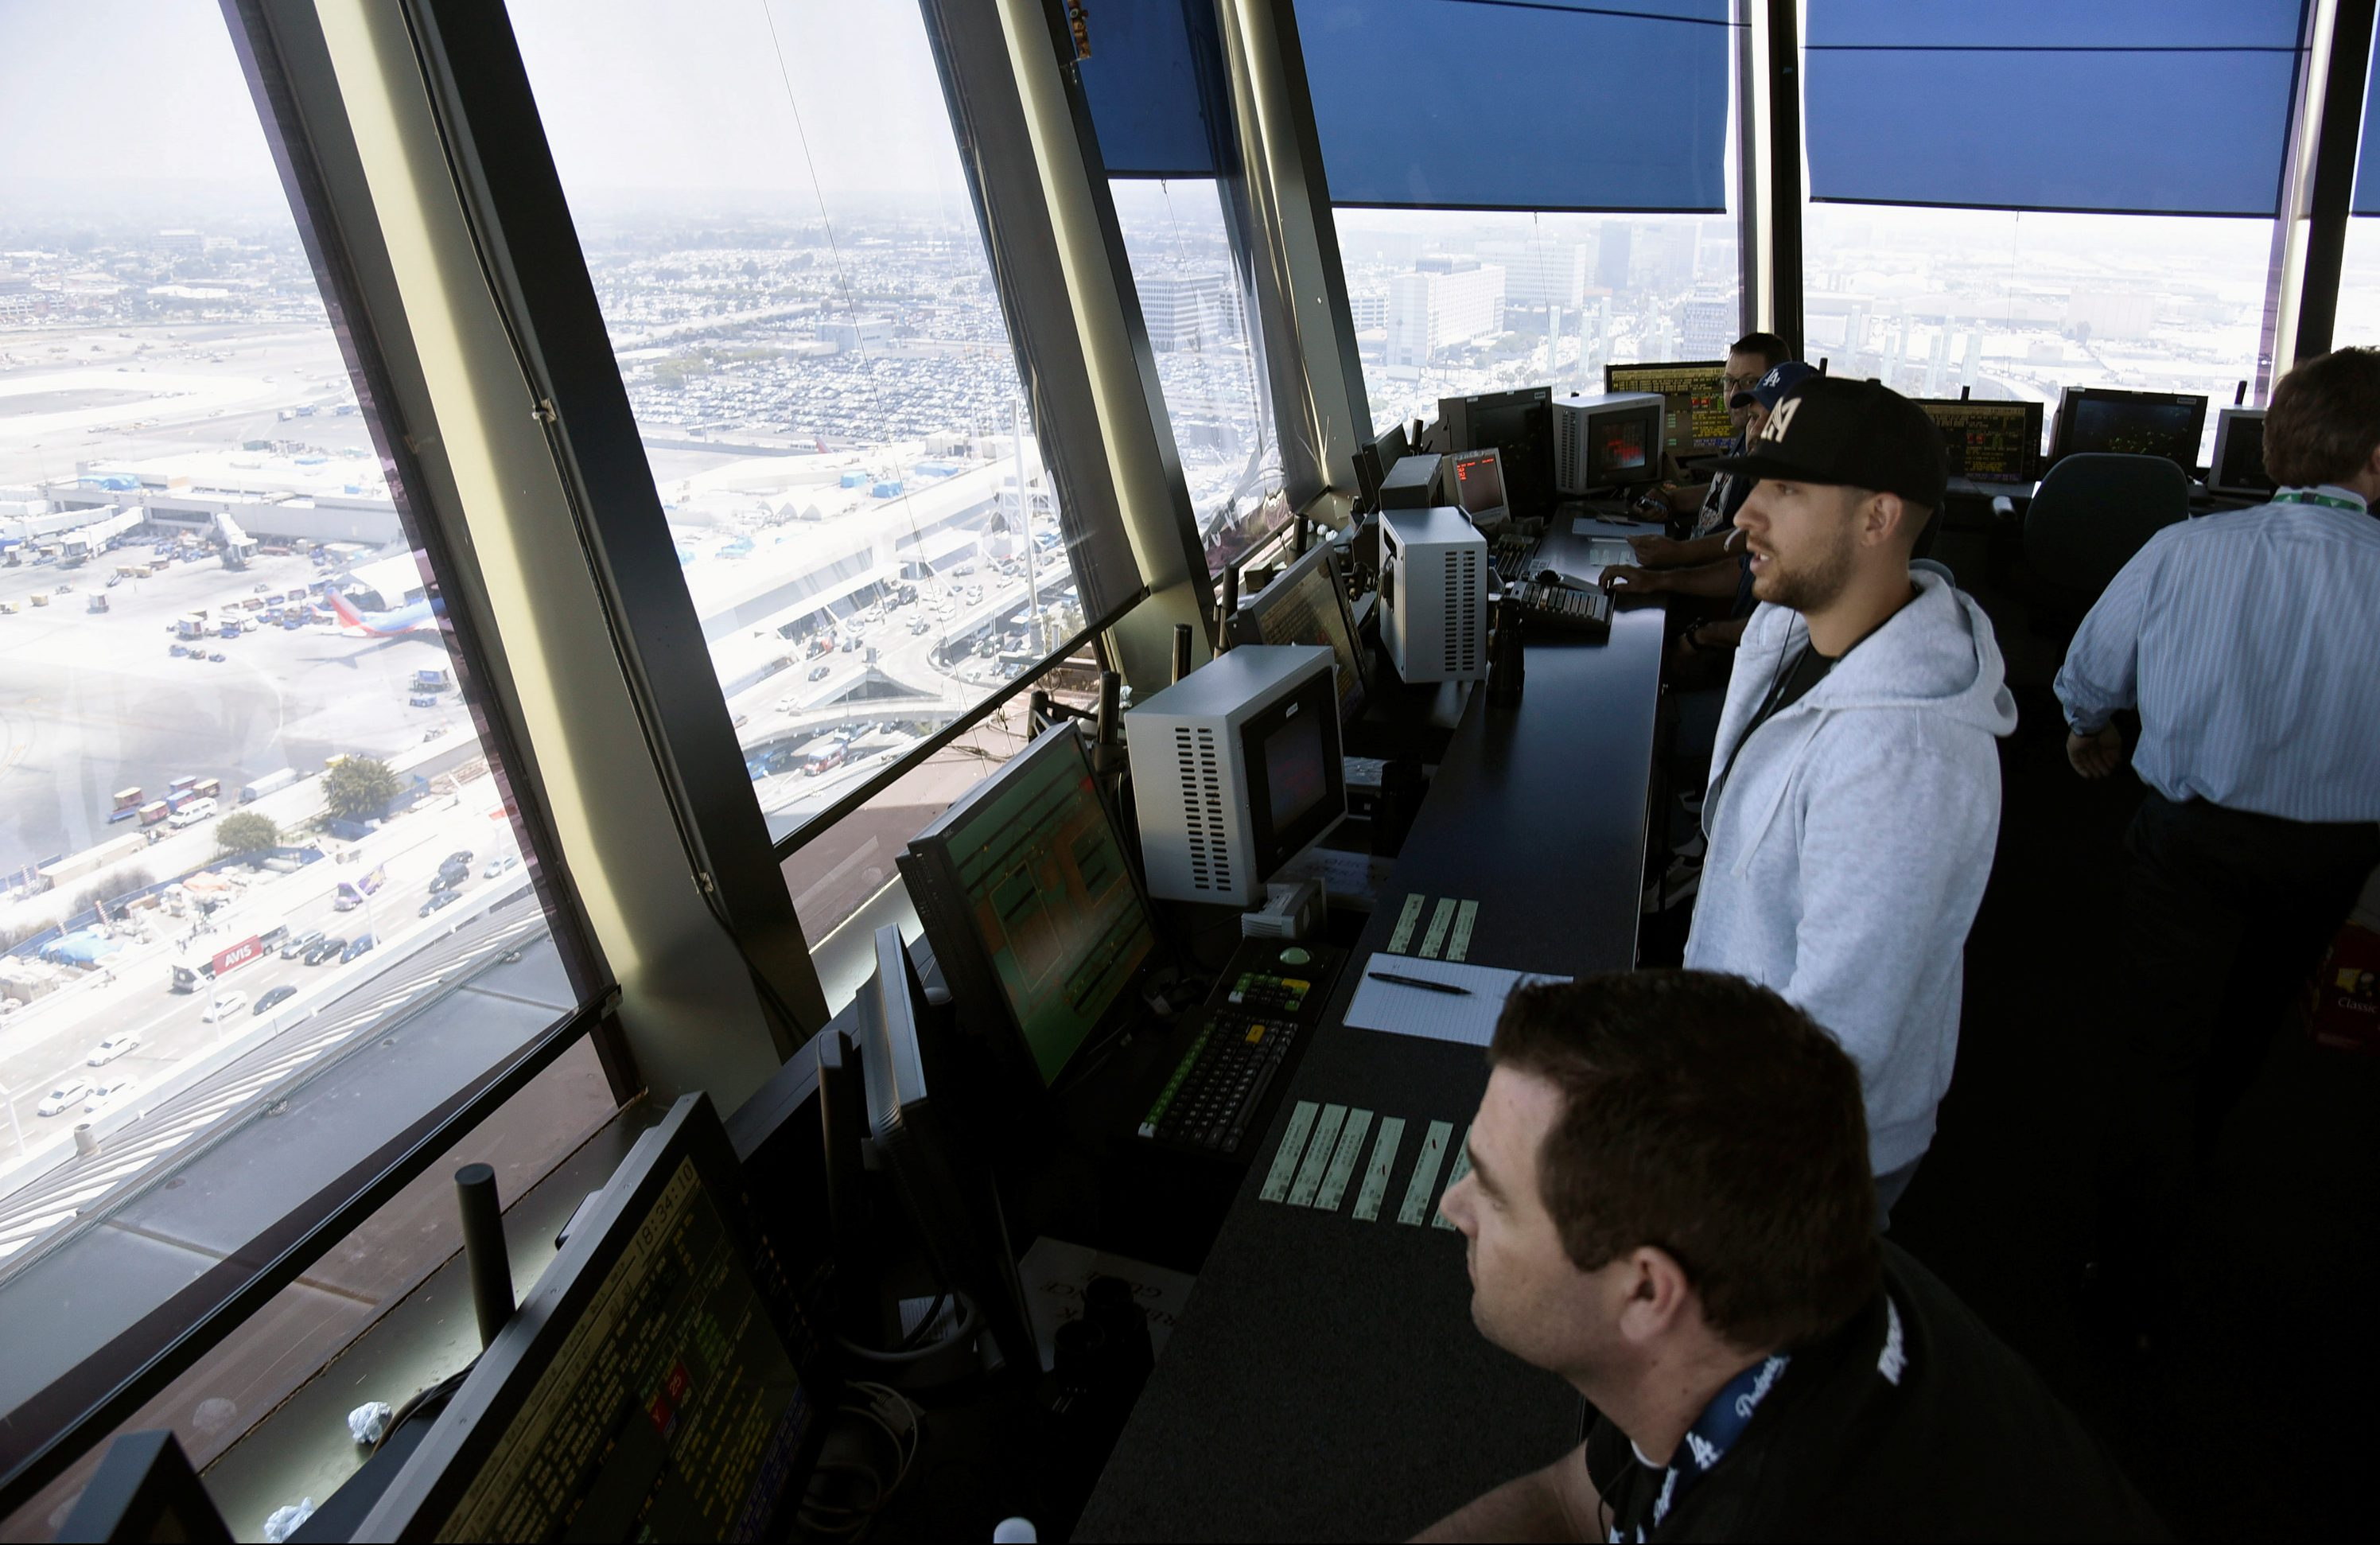 Air traffic controllers talk with pilots inside the control tower at Los Angeles International Airport (LAX) in  Los Angeles, California